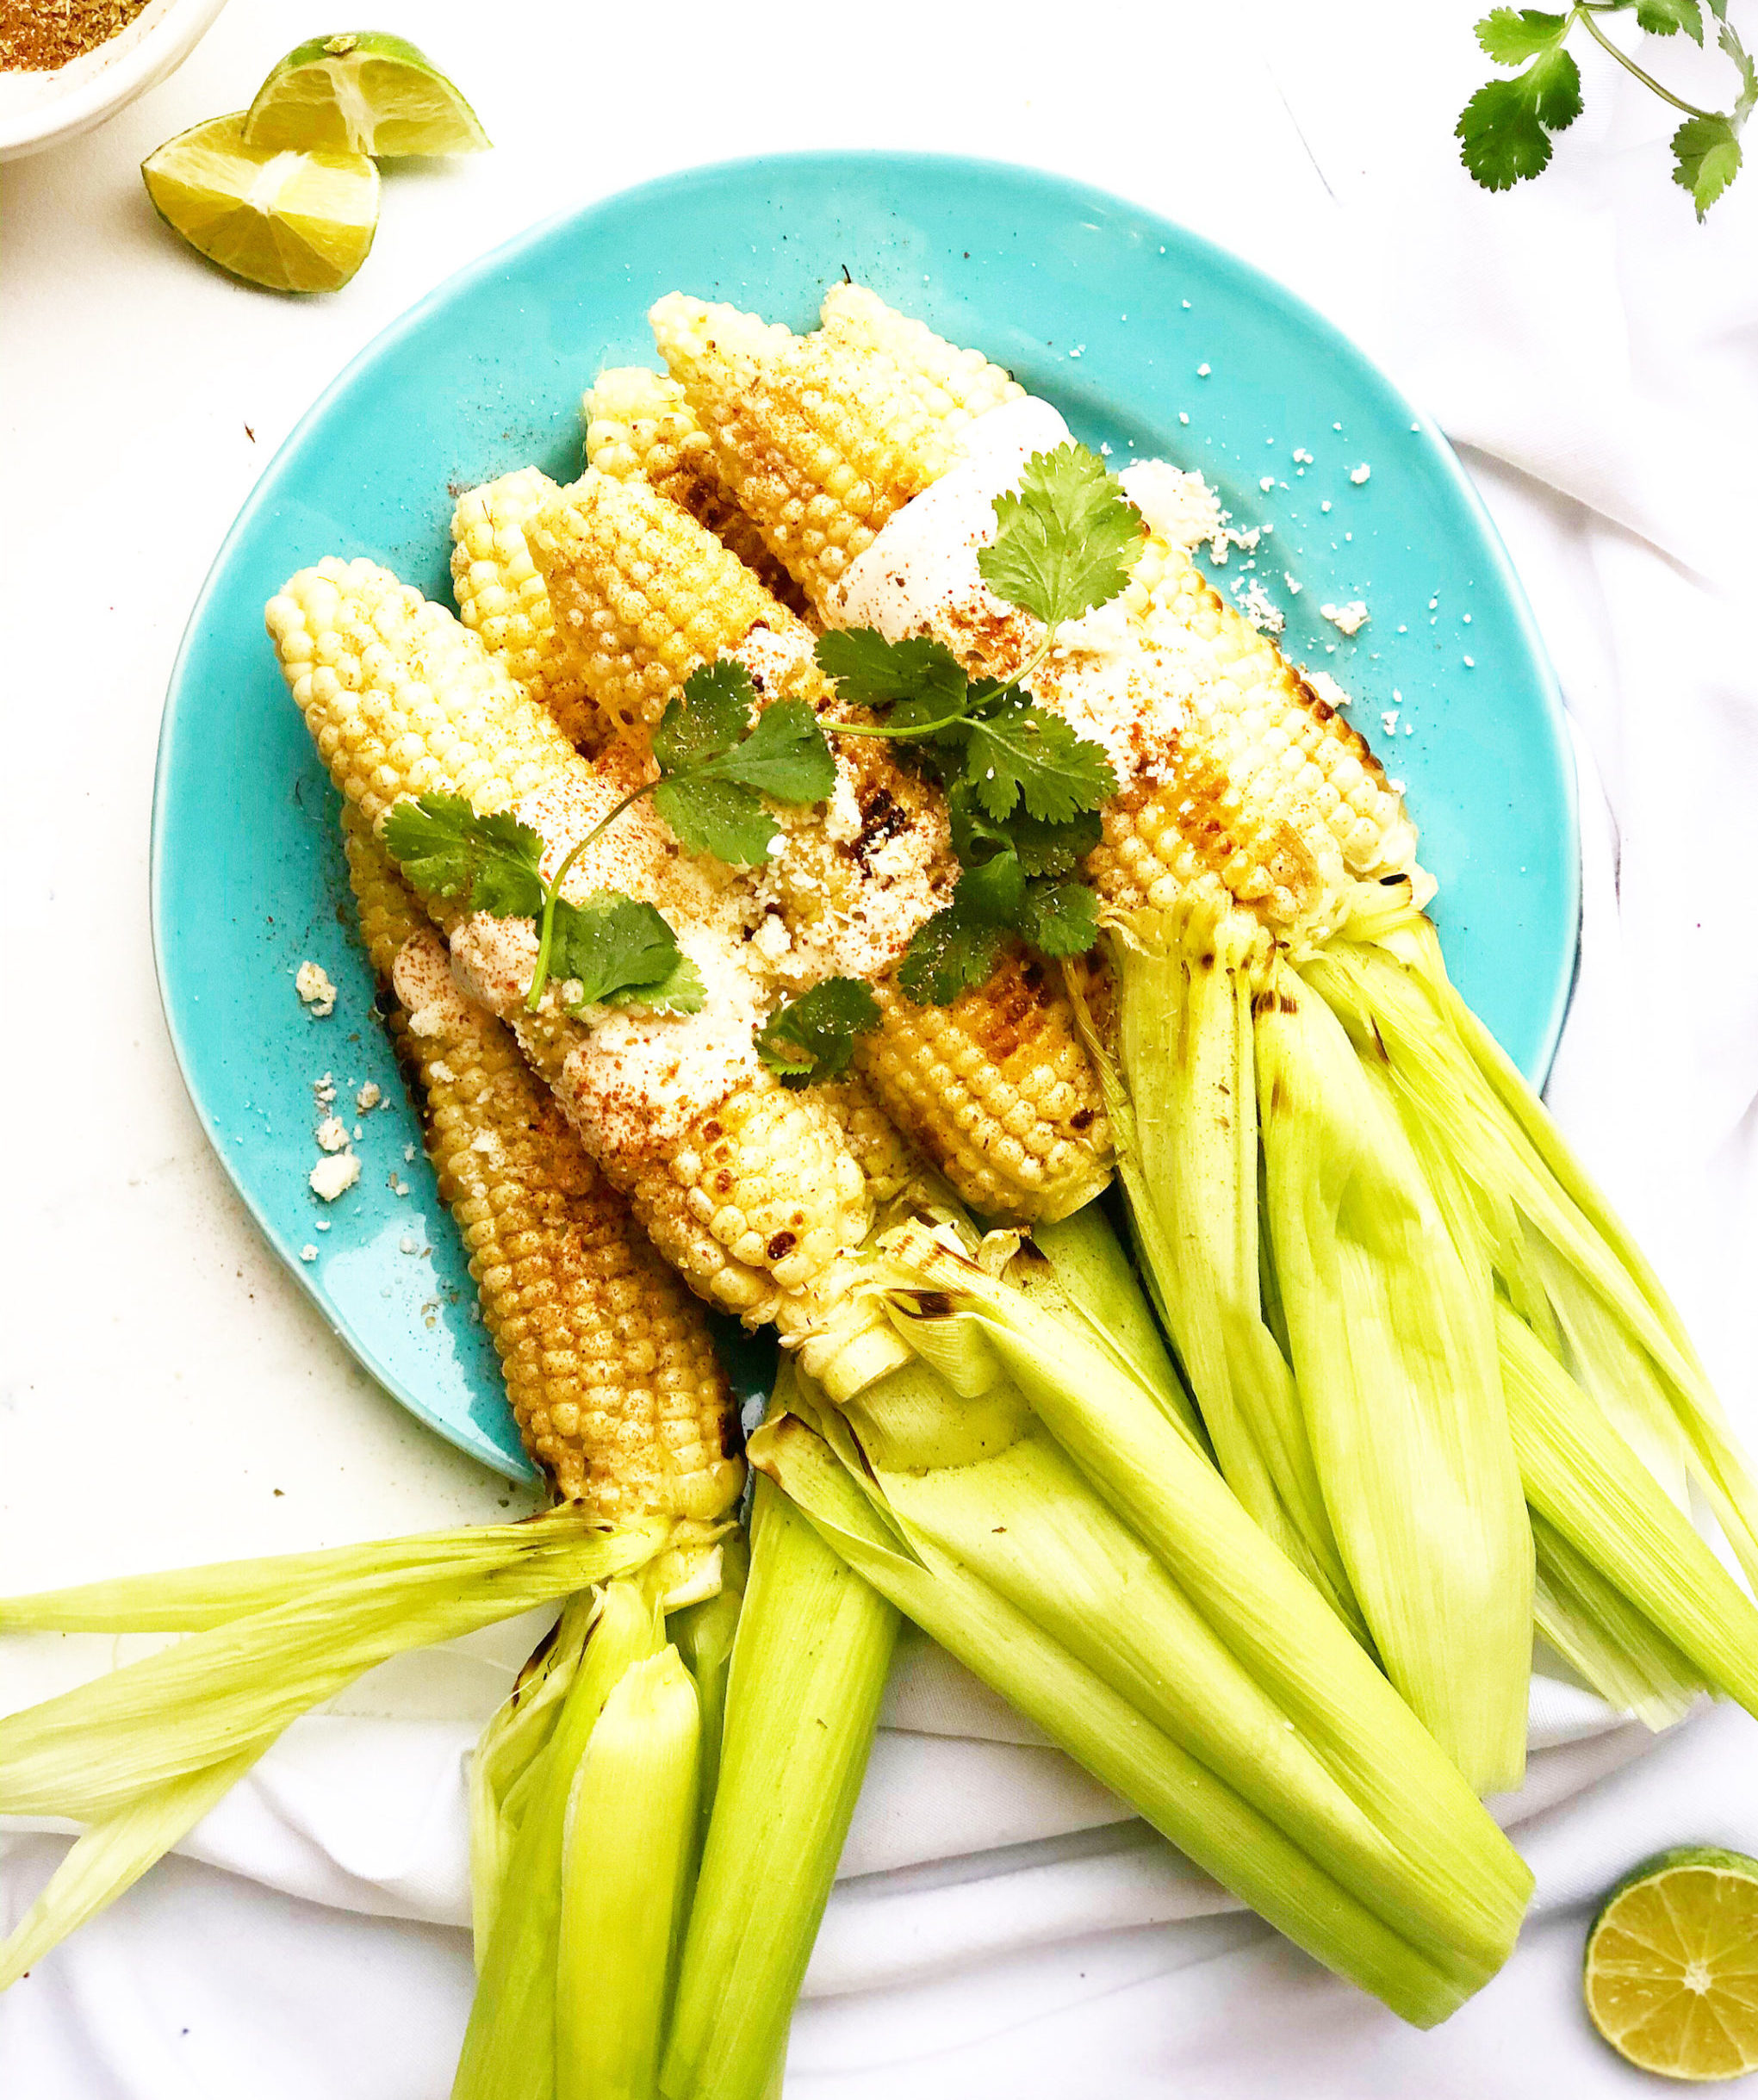 Easy Grilled Mexican Street Corn